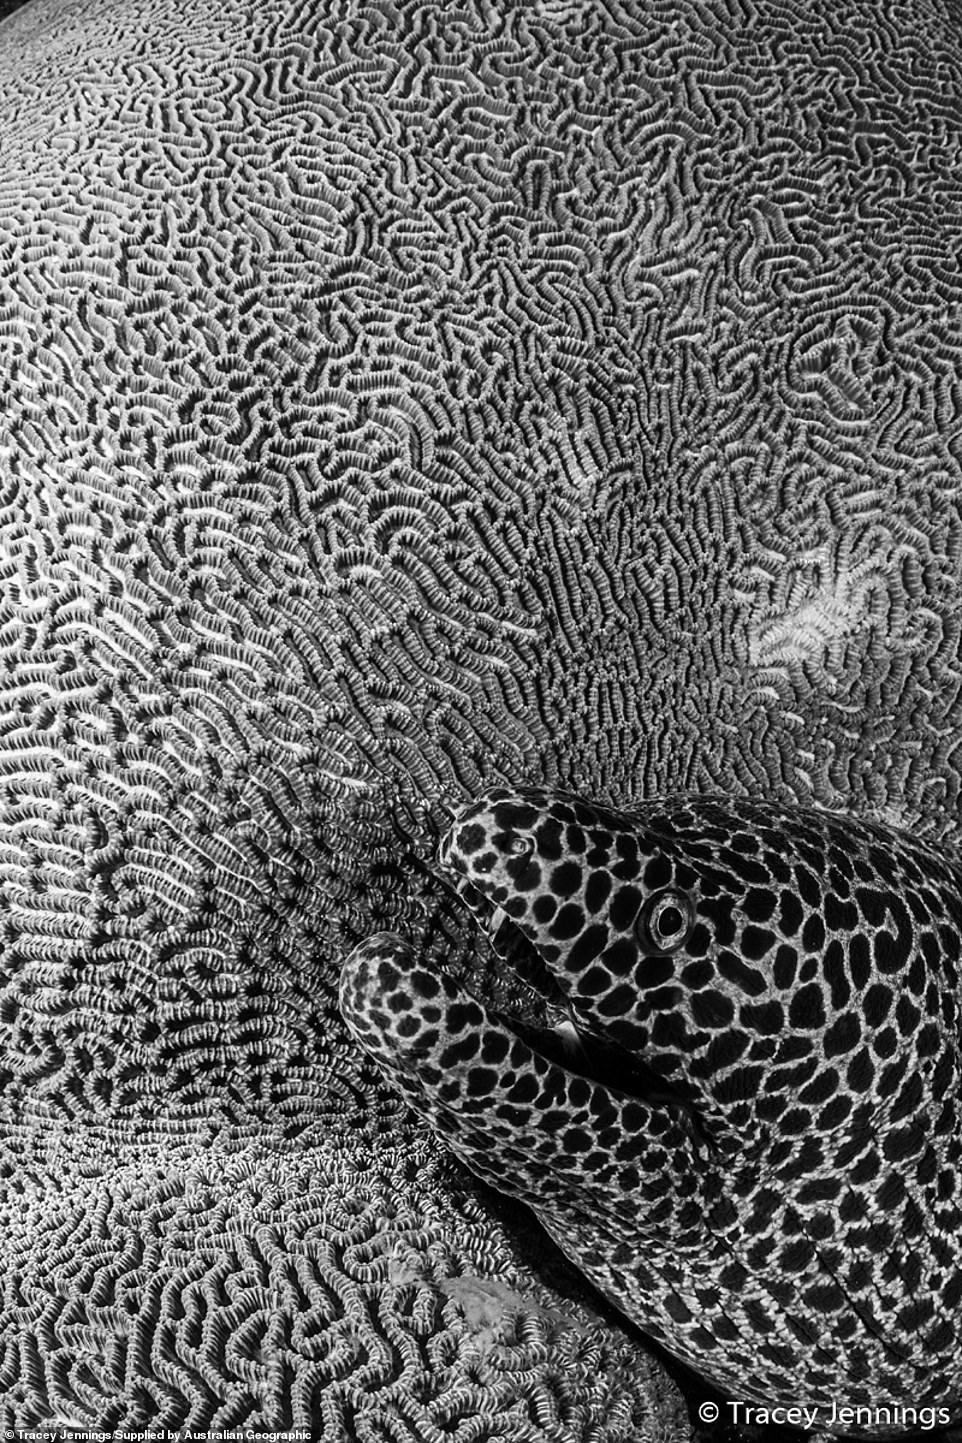 Double take: Tracey Jennings, from the UK,came across this amazing juxtaposition of a honeycomb moray eel and a textured brain coral in the Banda Sea, which is located in the Maluku Islands of Indonesia